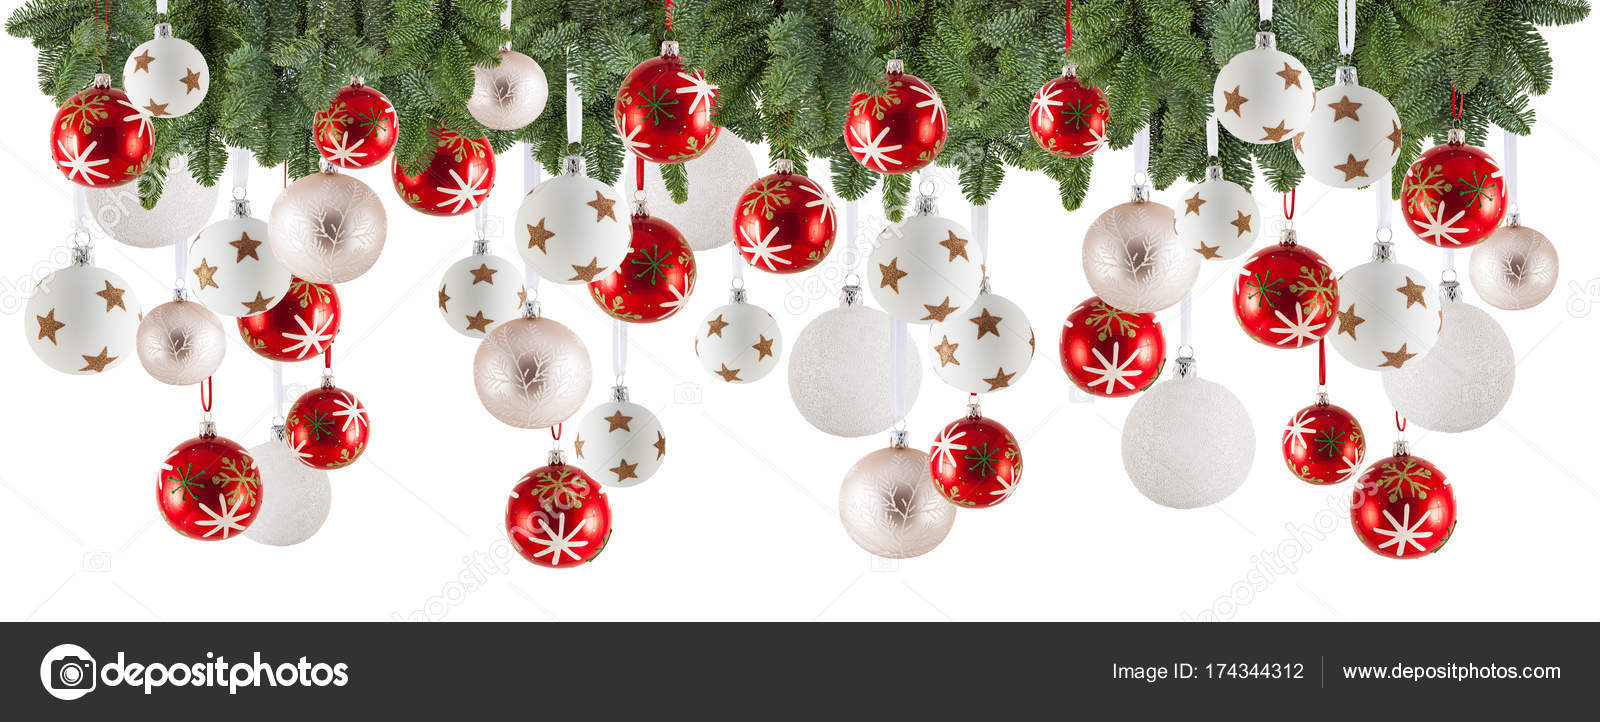 Christmas Garland Background With Ornaments Christmas Baubles